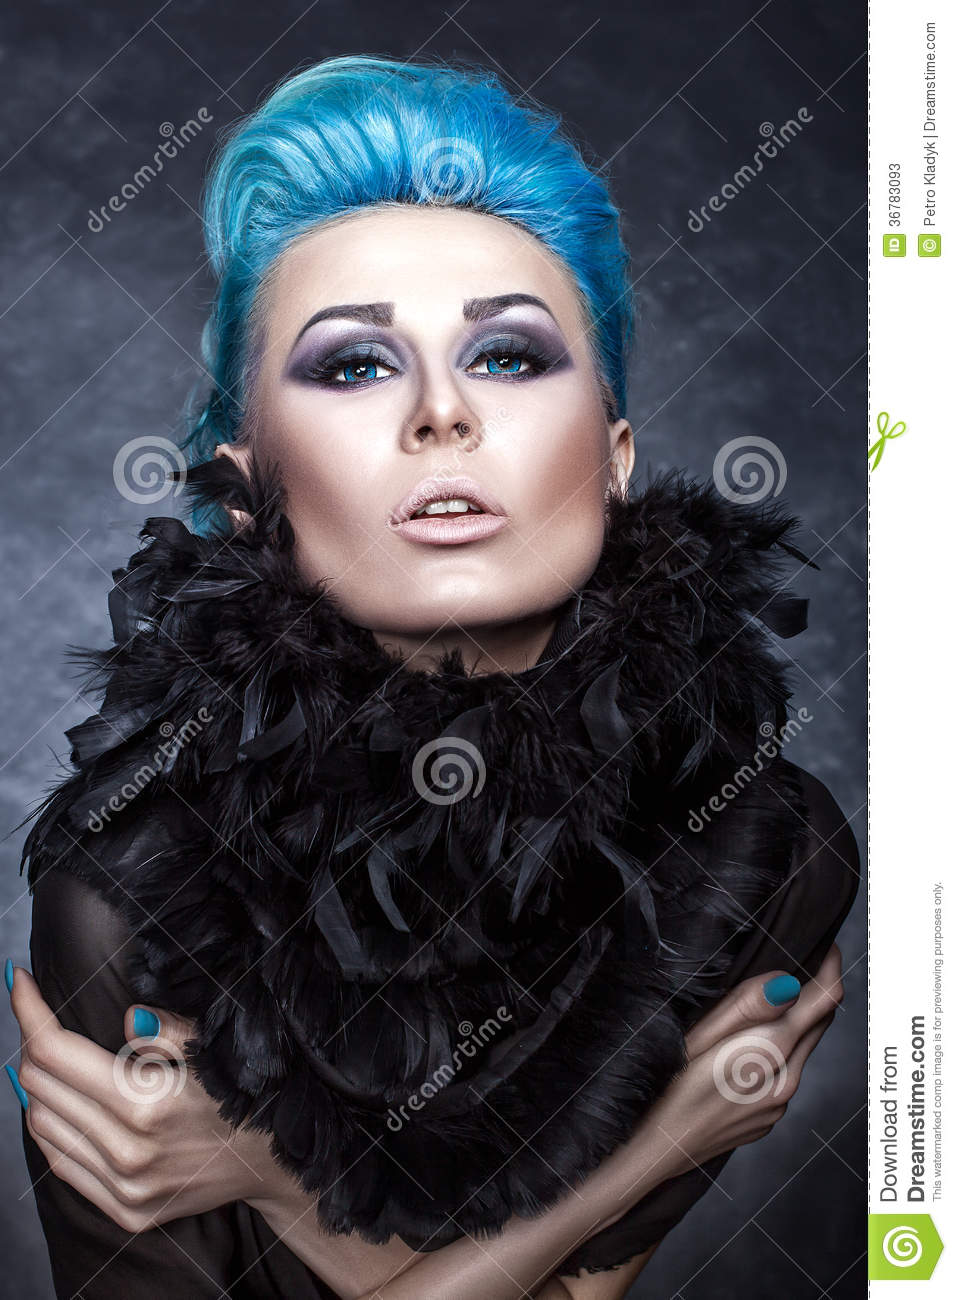 Beauty portrait of a girl with blue hair.